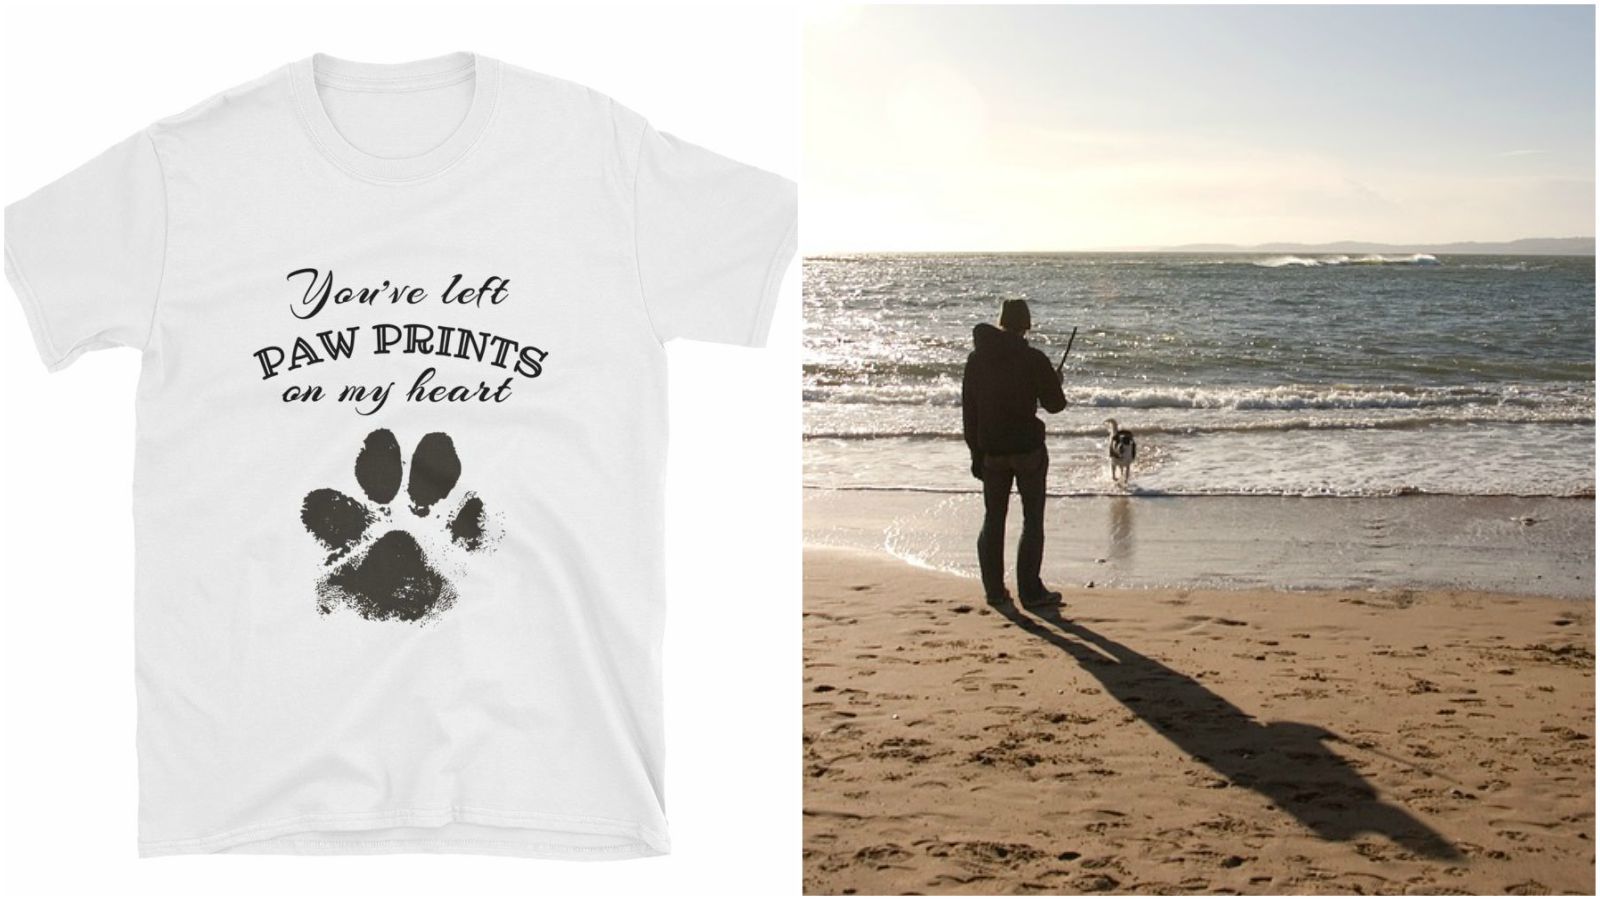 Pet memorial t-shirts are a great way to honor the love you've had for your pet and best friend.